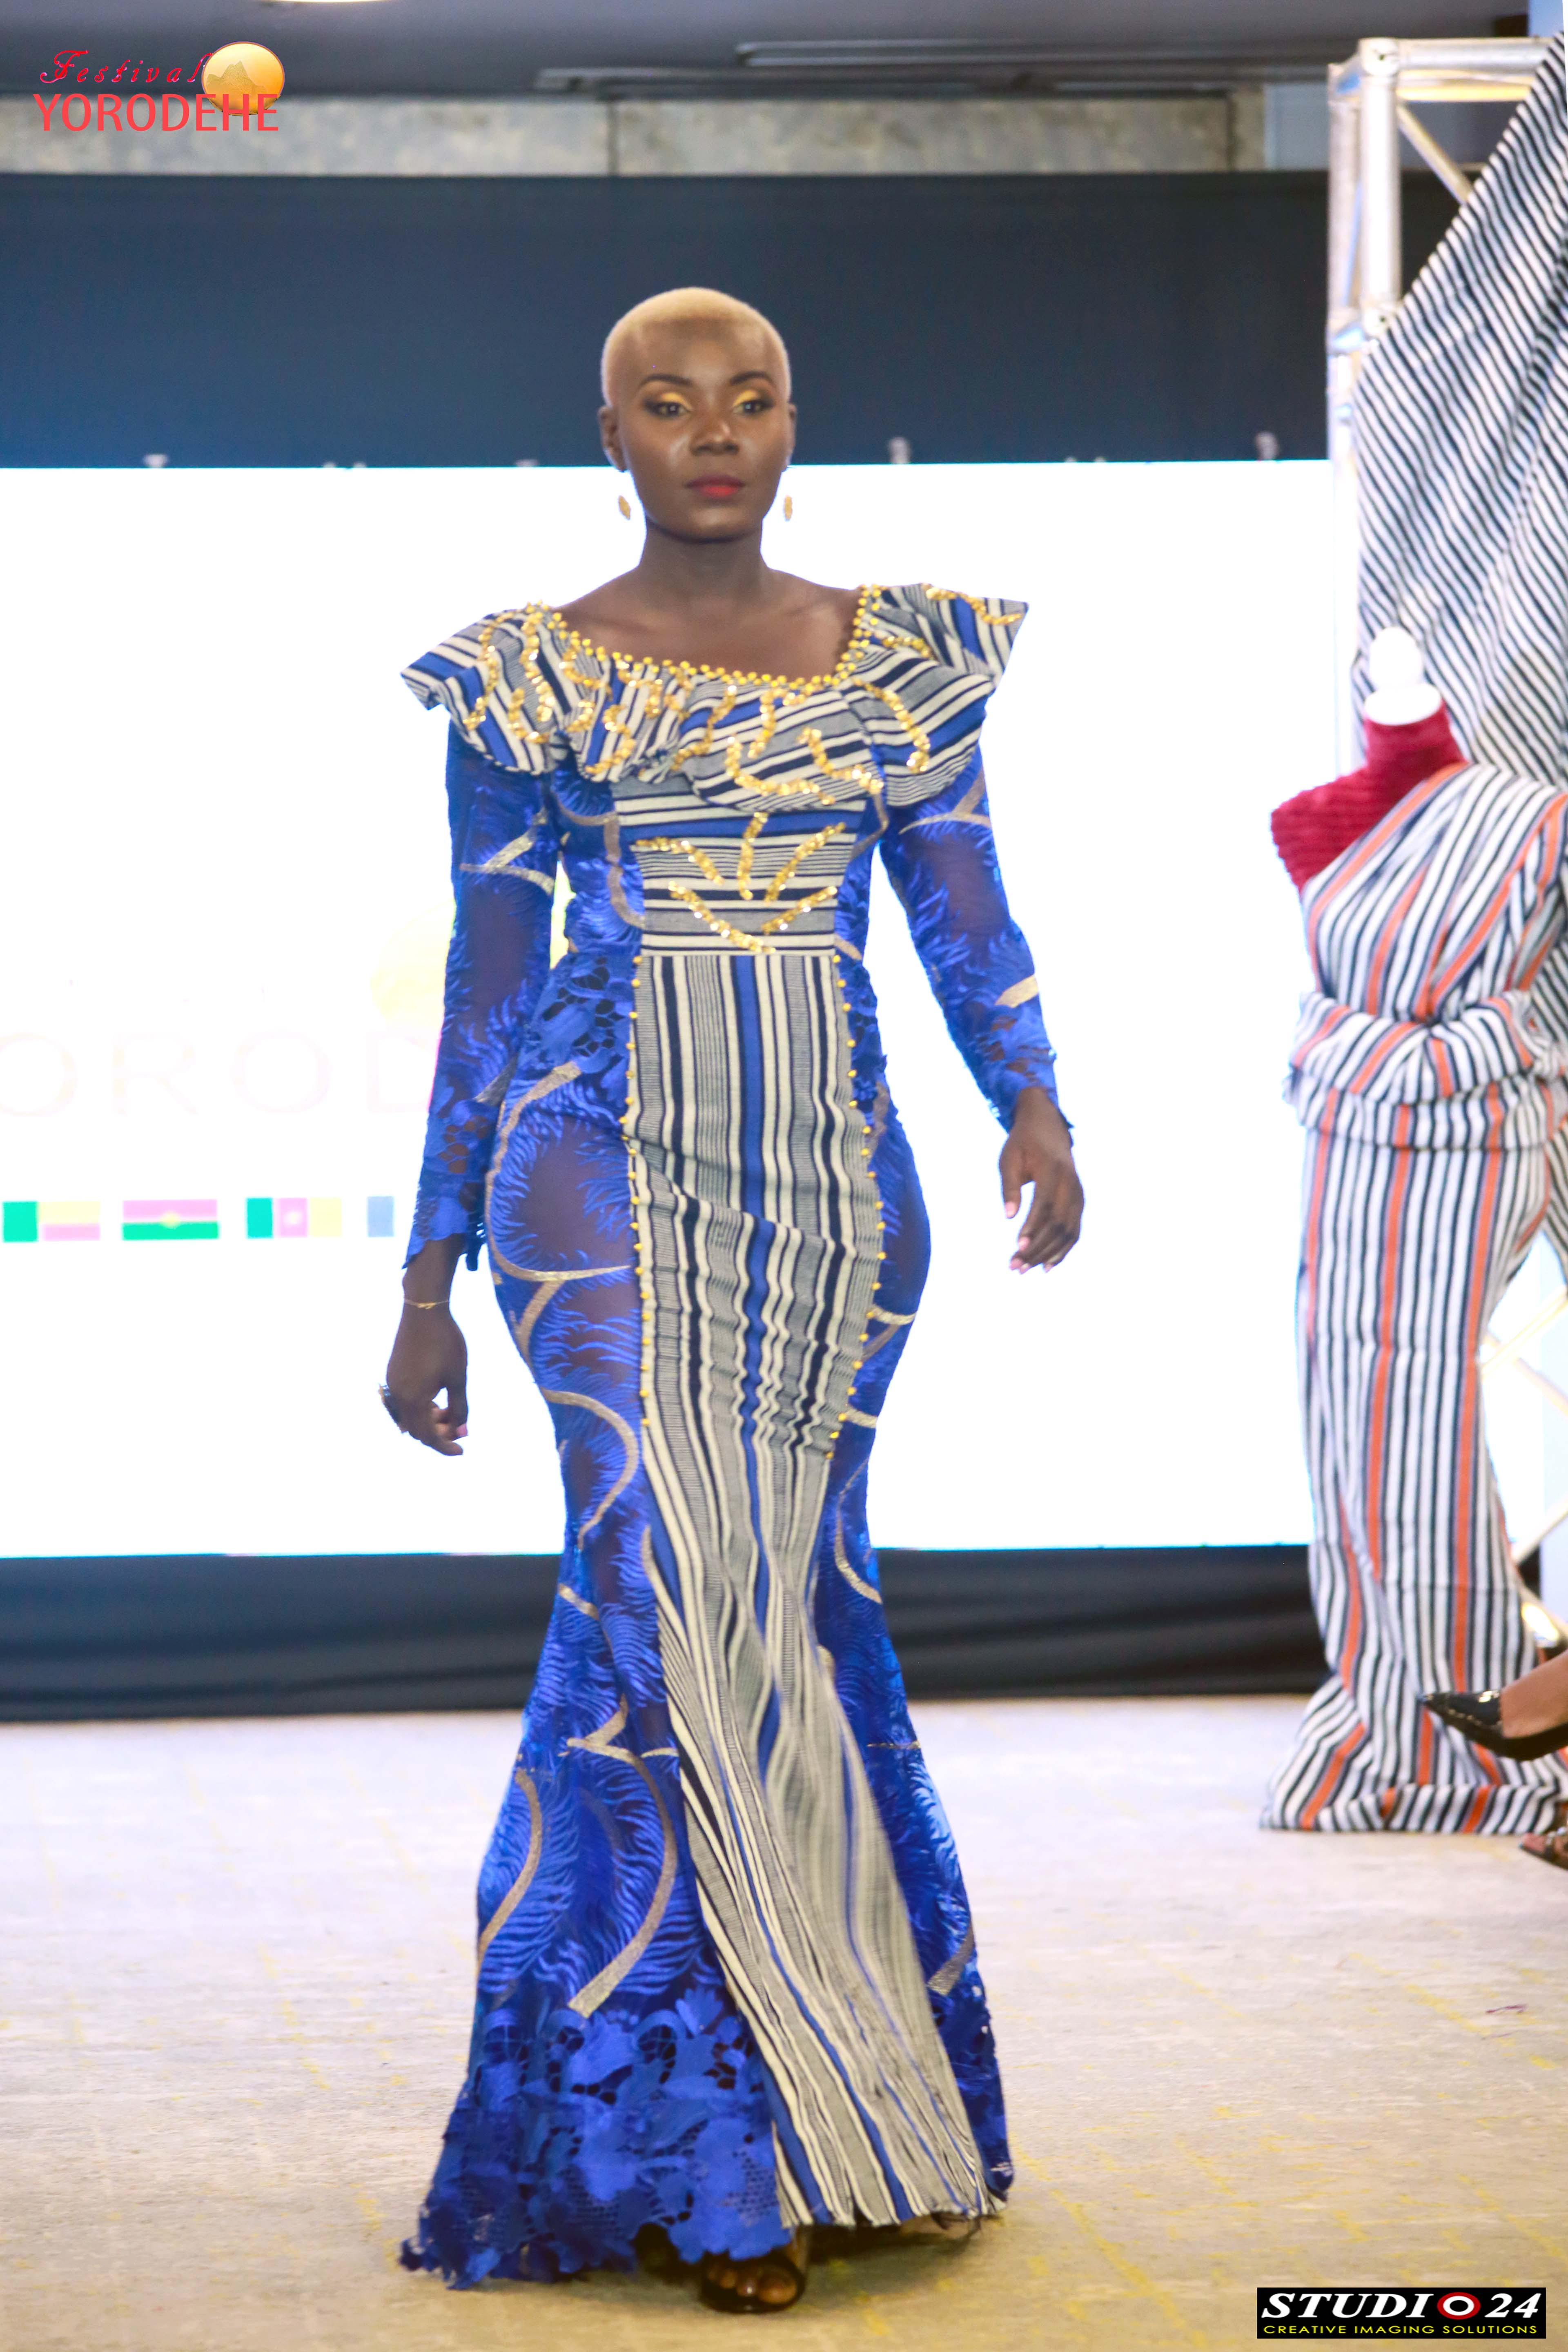 AFRICAN FASHION STYLE MAGAZINE – Yôrôdehe Festival of Pagne Tissé Organized by Patricia Ouly - Brand OulyPat Creation - The new outfits of Patricia Ouly, call Signature Photographer DAN NGU - Official Media Partner DN AFRICA - STUDIO 24 NIGERIA - STUDIO 24 INTERNATIONAL - Ifeanyi Christopher Oputa MD AND CEO OF COLVI LIMITED AND STUDIO 24 - CHEVEUX CHERIE